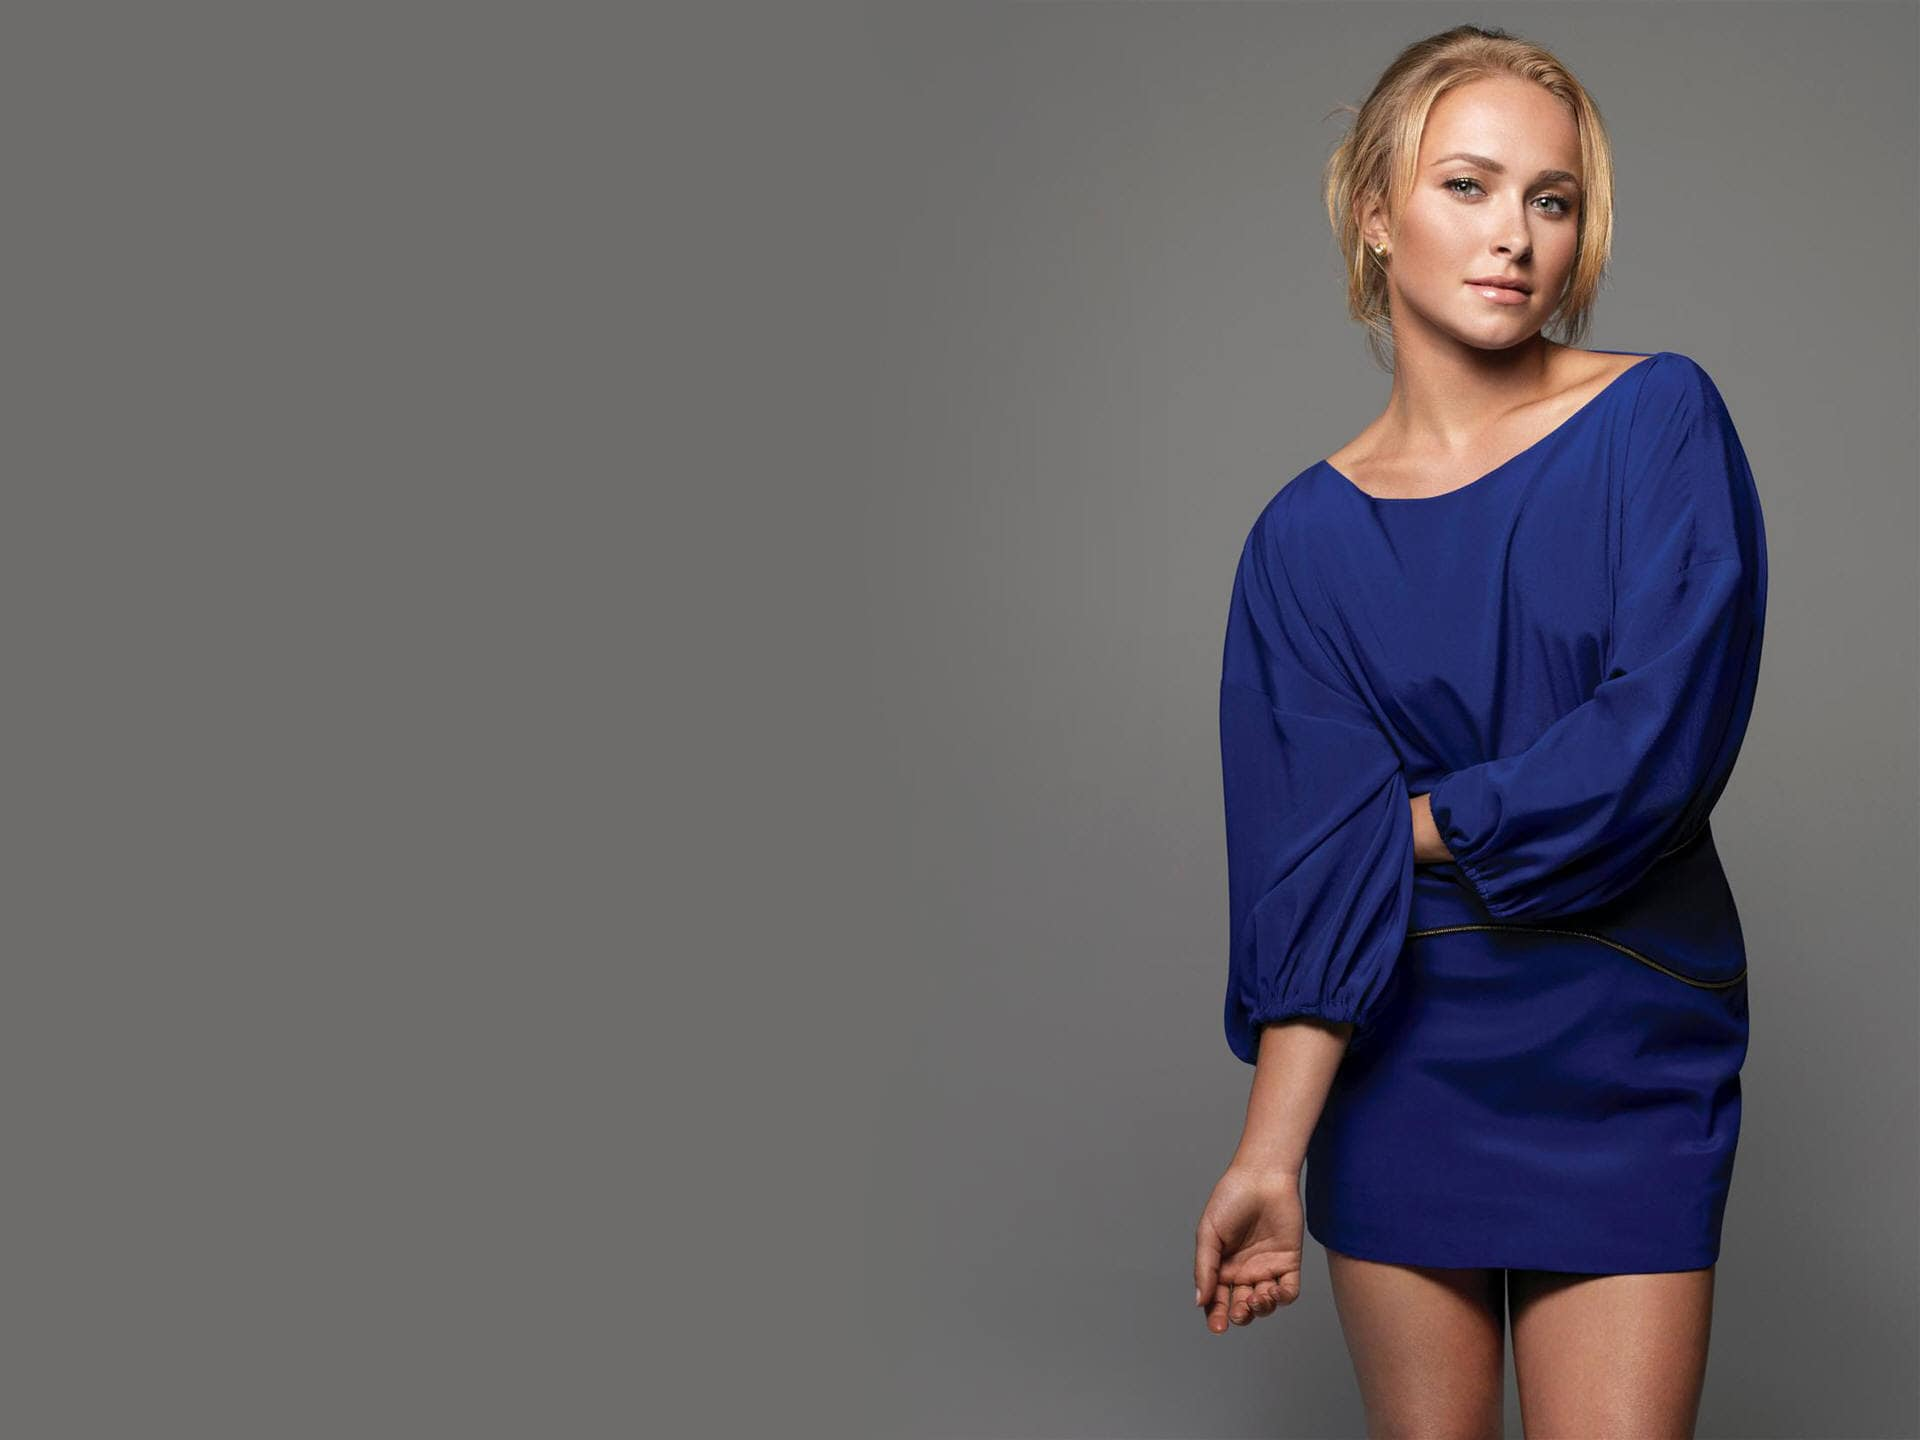 Hayden Panettiere full hd wallpapers